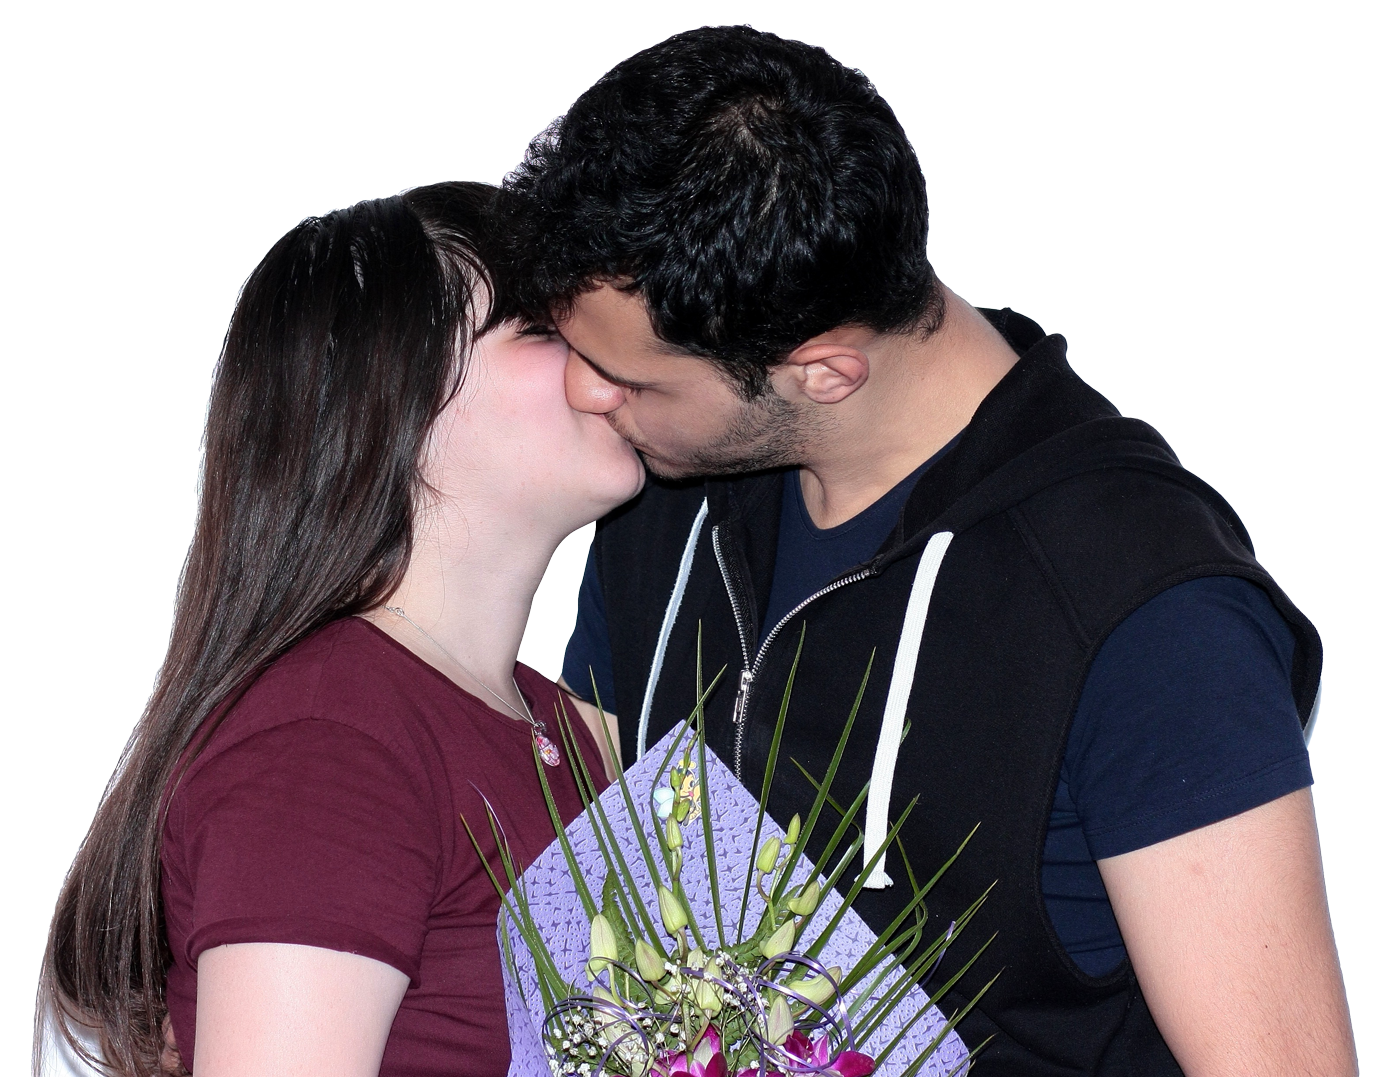 PNG Kissing Couple - 44550